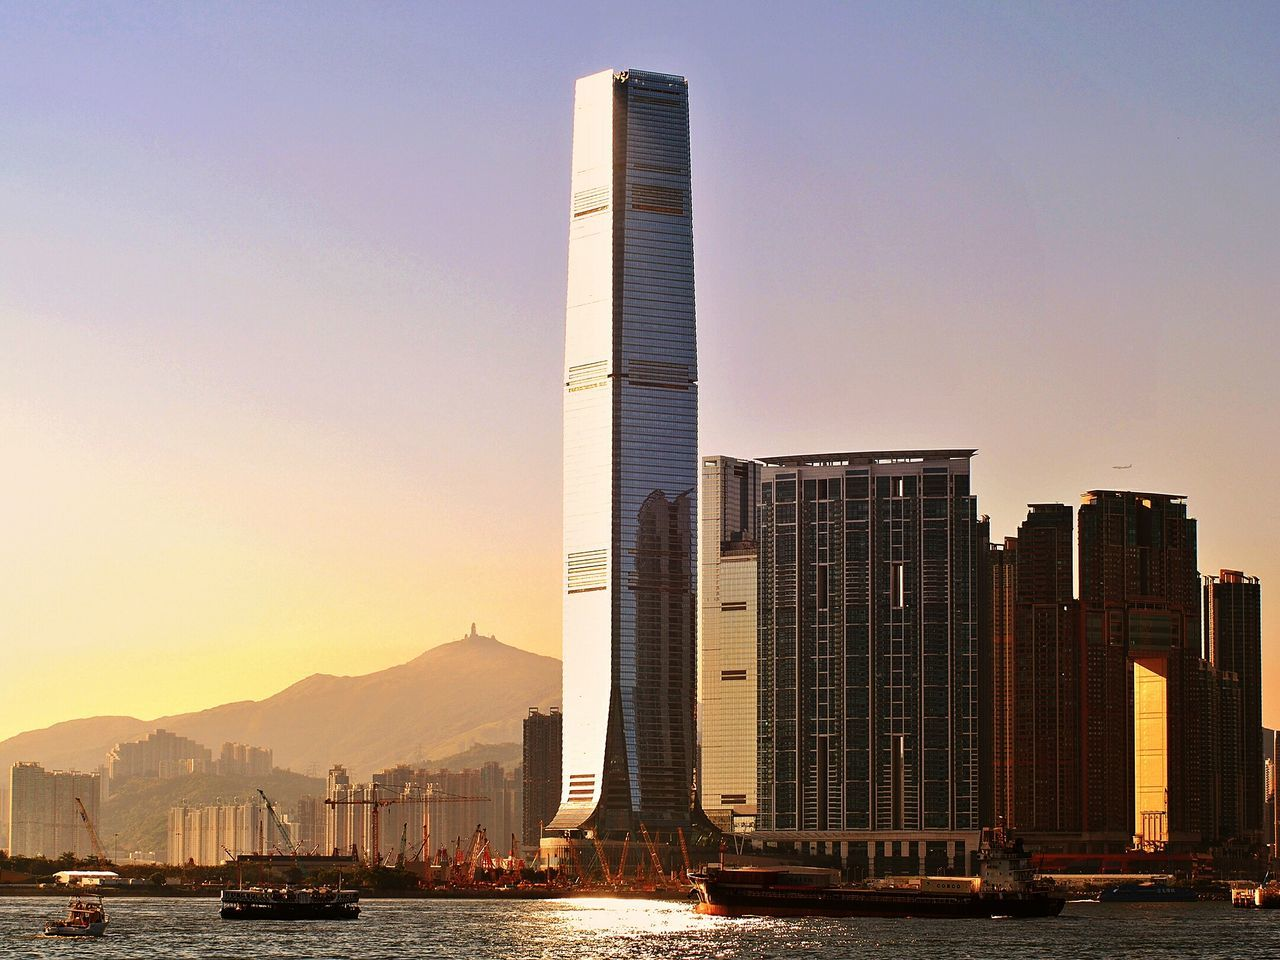 World Trade Center Sky 100 Landmarkbuildings Of HongKong The Highest Discoverhongkong